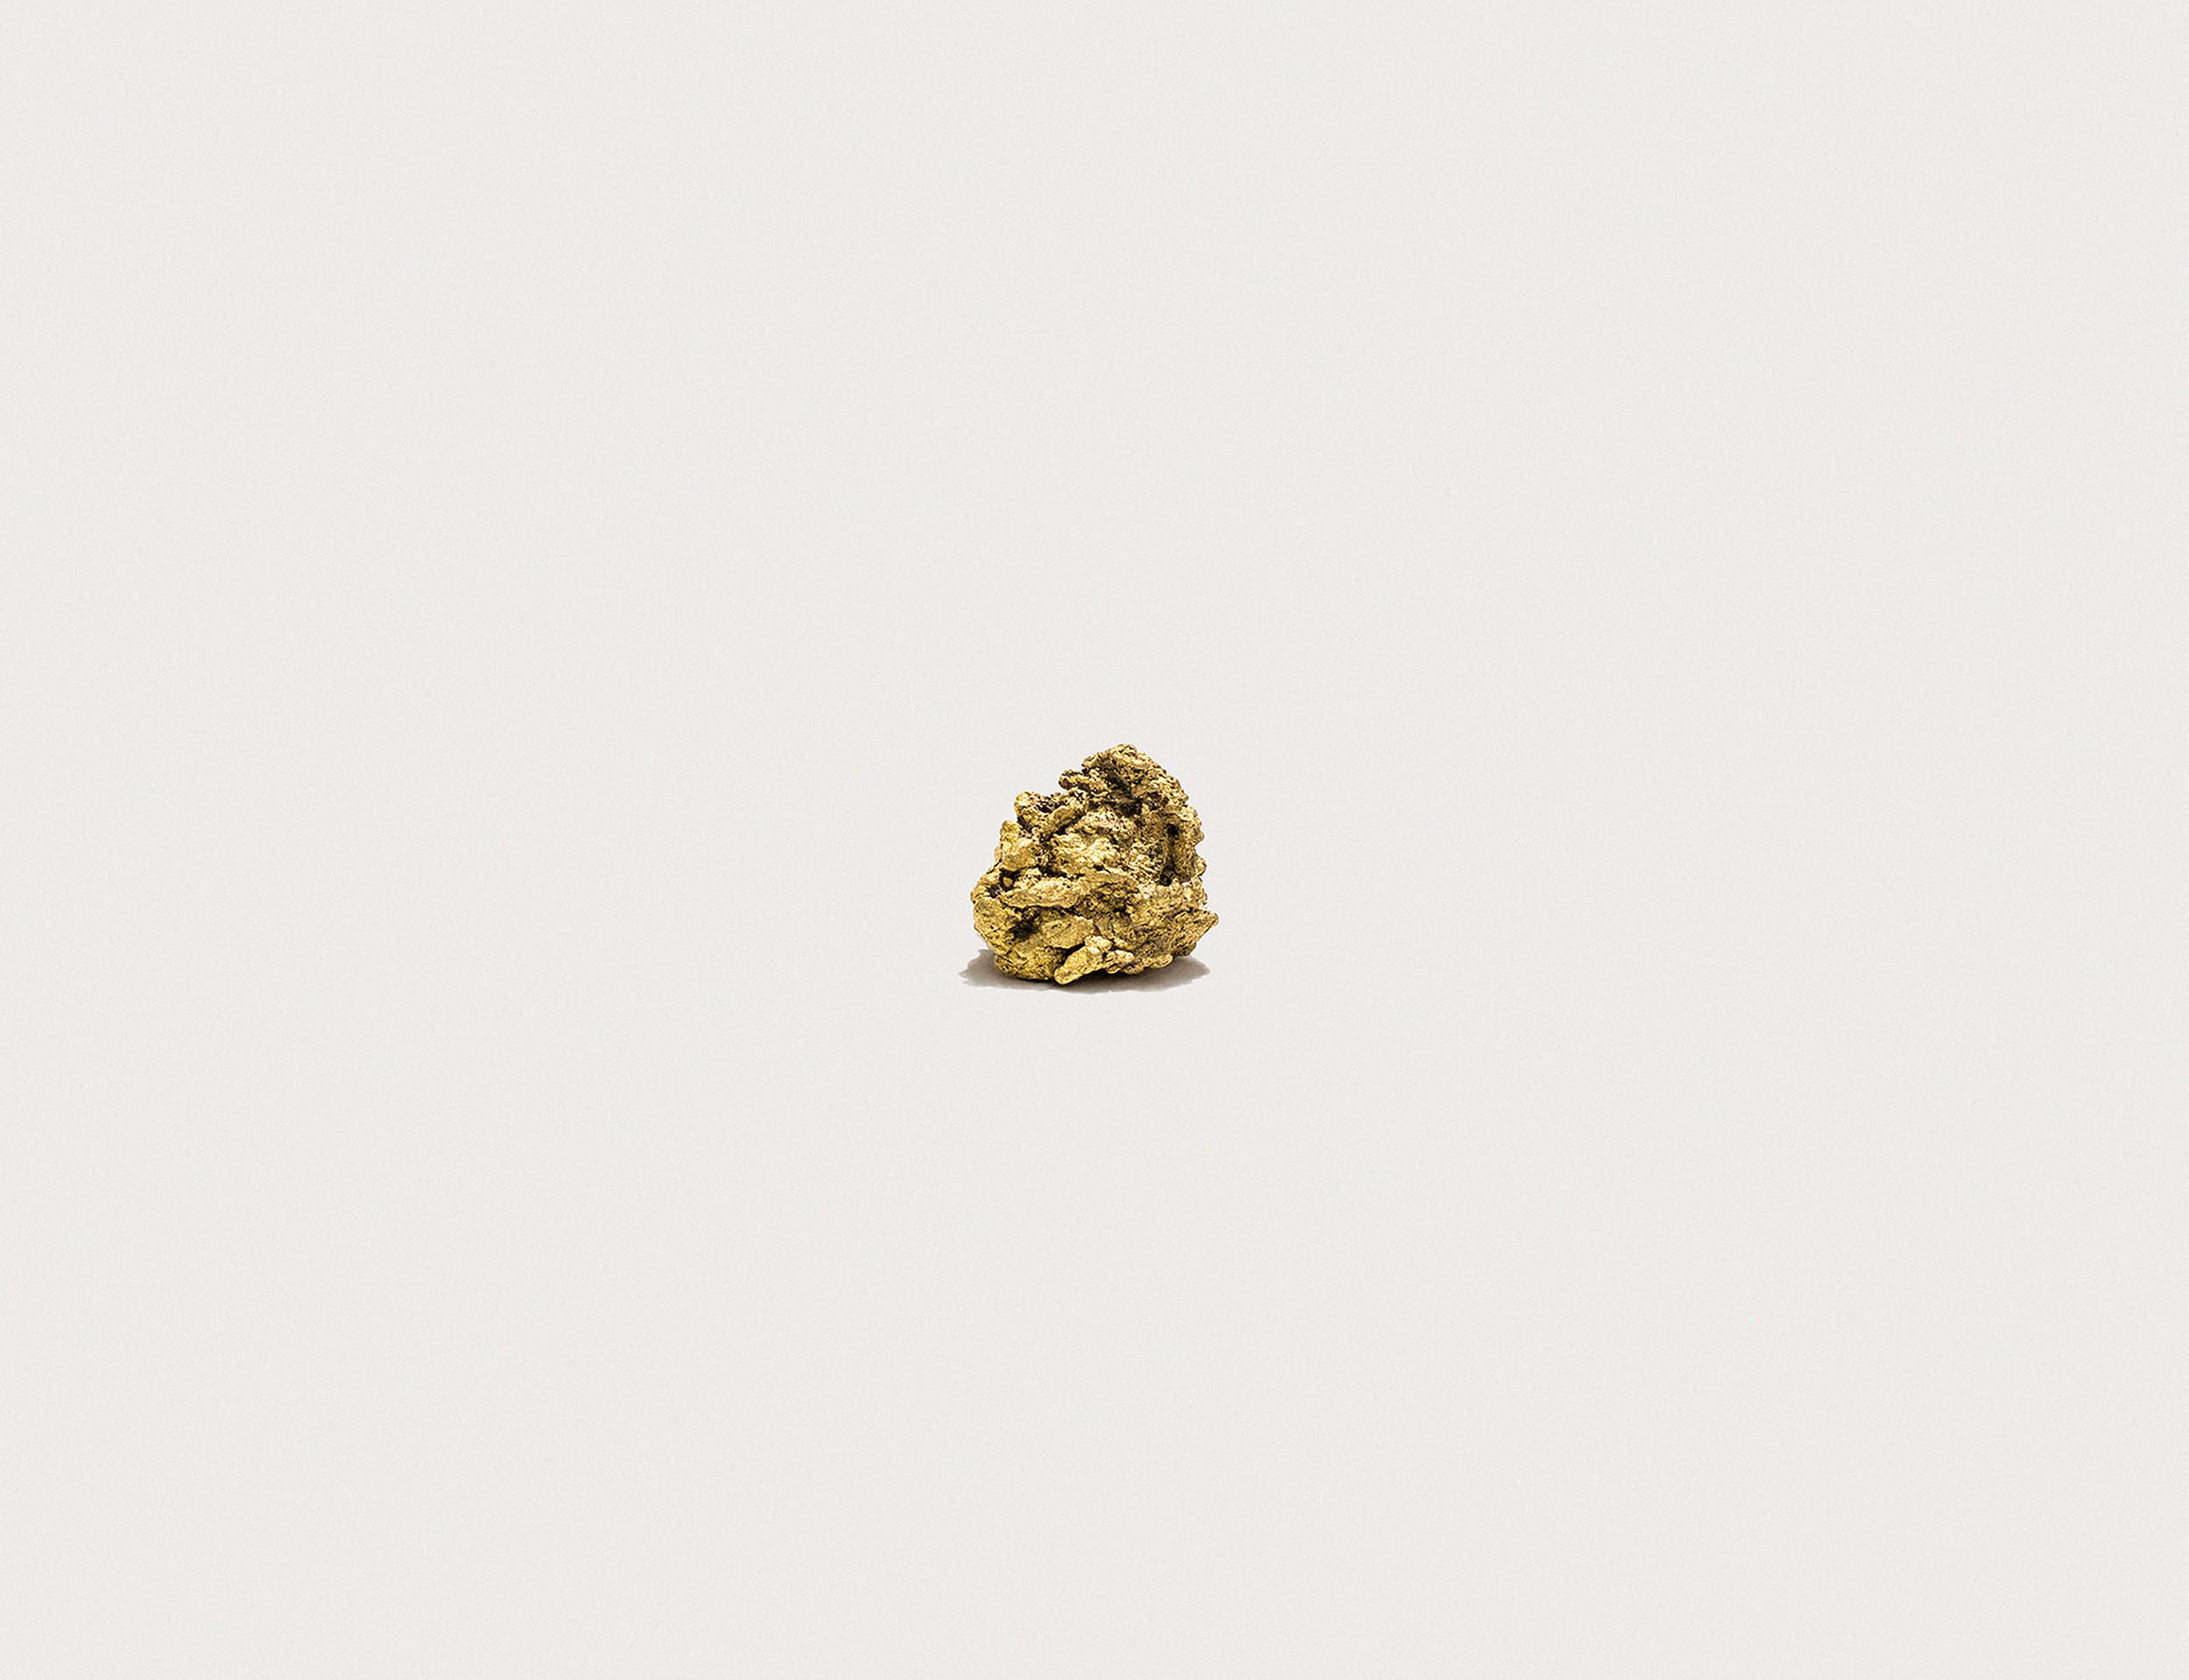 LLEVANDO UNA PEPITA DE ORO A LA VELOCIDAD DEL SONIDO  Revolver Galería, Lima 22 April - 4 June 2015  Revolver Galería is pleased to present the first stage of a cross-disciplinary project by Andrea Galvani, Llevando una pepita de oro a la velocidad del sonido, premiering in Lima, Wednesday April 22. The gallery is proud to announce representation of Galvani with his debut solo exhibition in Peru.  The End is a trilogy of exhibitions that will unfold in multiple manifestations — first in Lima, followed by New York, then Mexico City — a complex body of work which includes an 11 channel video installation, a simultaneous sound project, drawings, objects, and a performance that will take place at specific times as an extension of the exhibition.